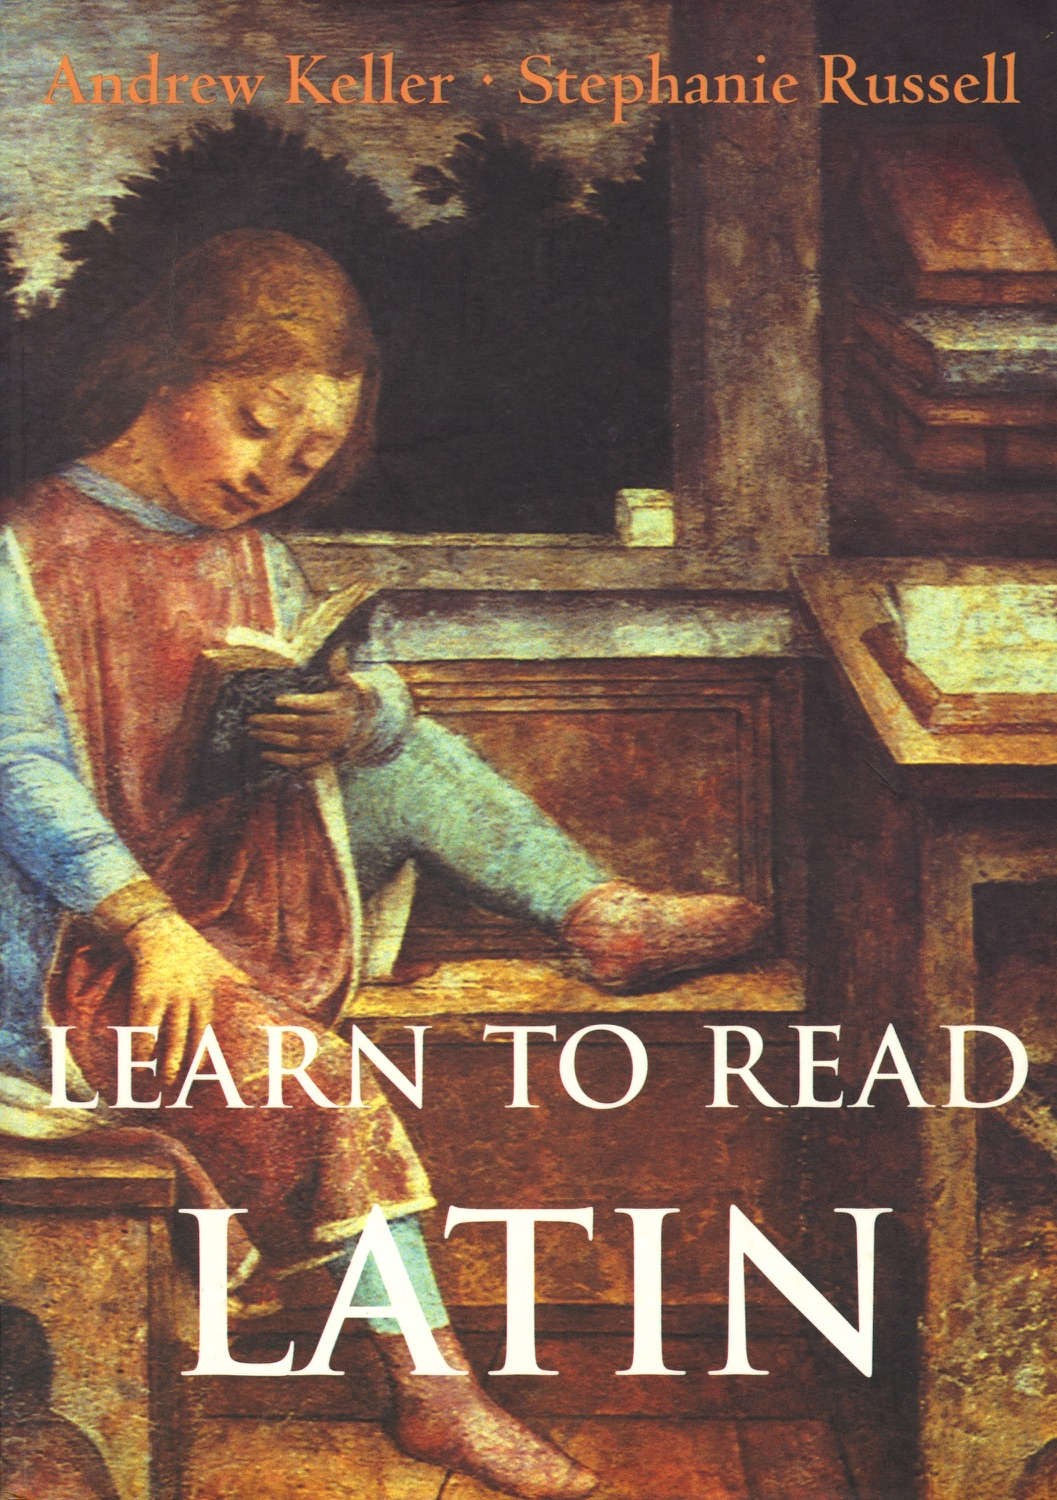 <p>Keller, Andrew and Stephanie Russell.</p><p><i>Learn to Read Latin.</i></p><p>New Haven: Yale University Press, 2004.</p>